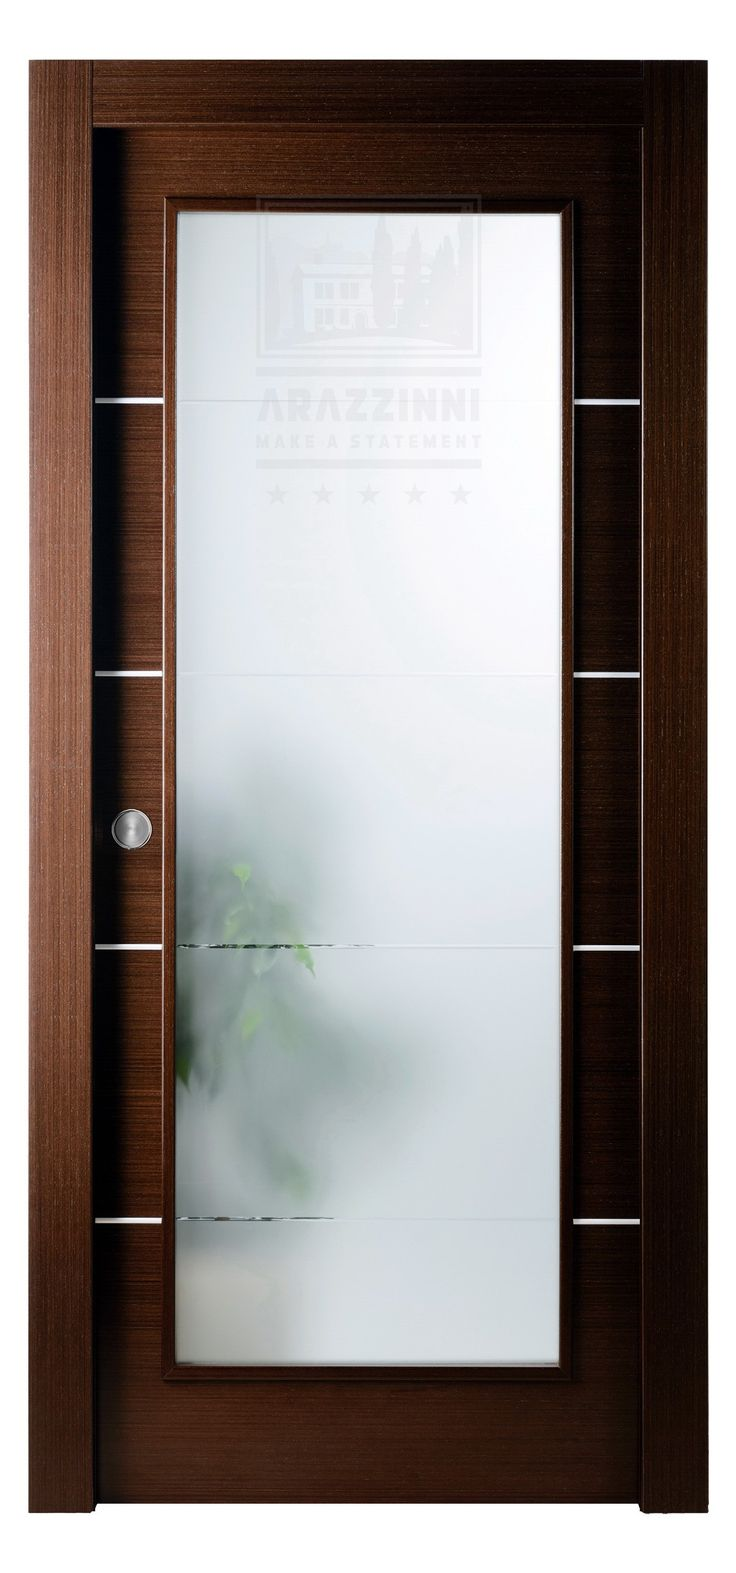 17 best images about arazzinni interior pocket doors on for Interior pocket doors with glass panels